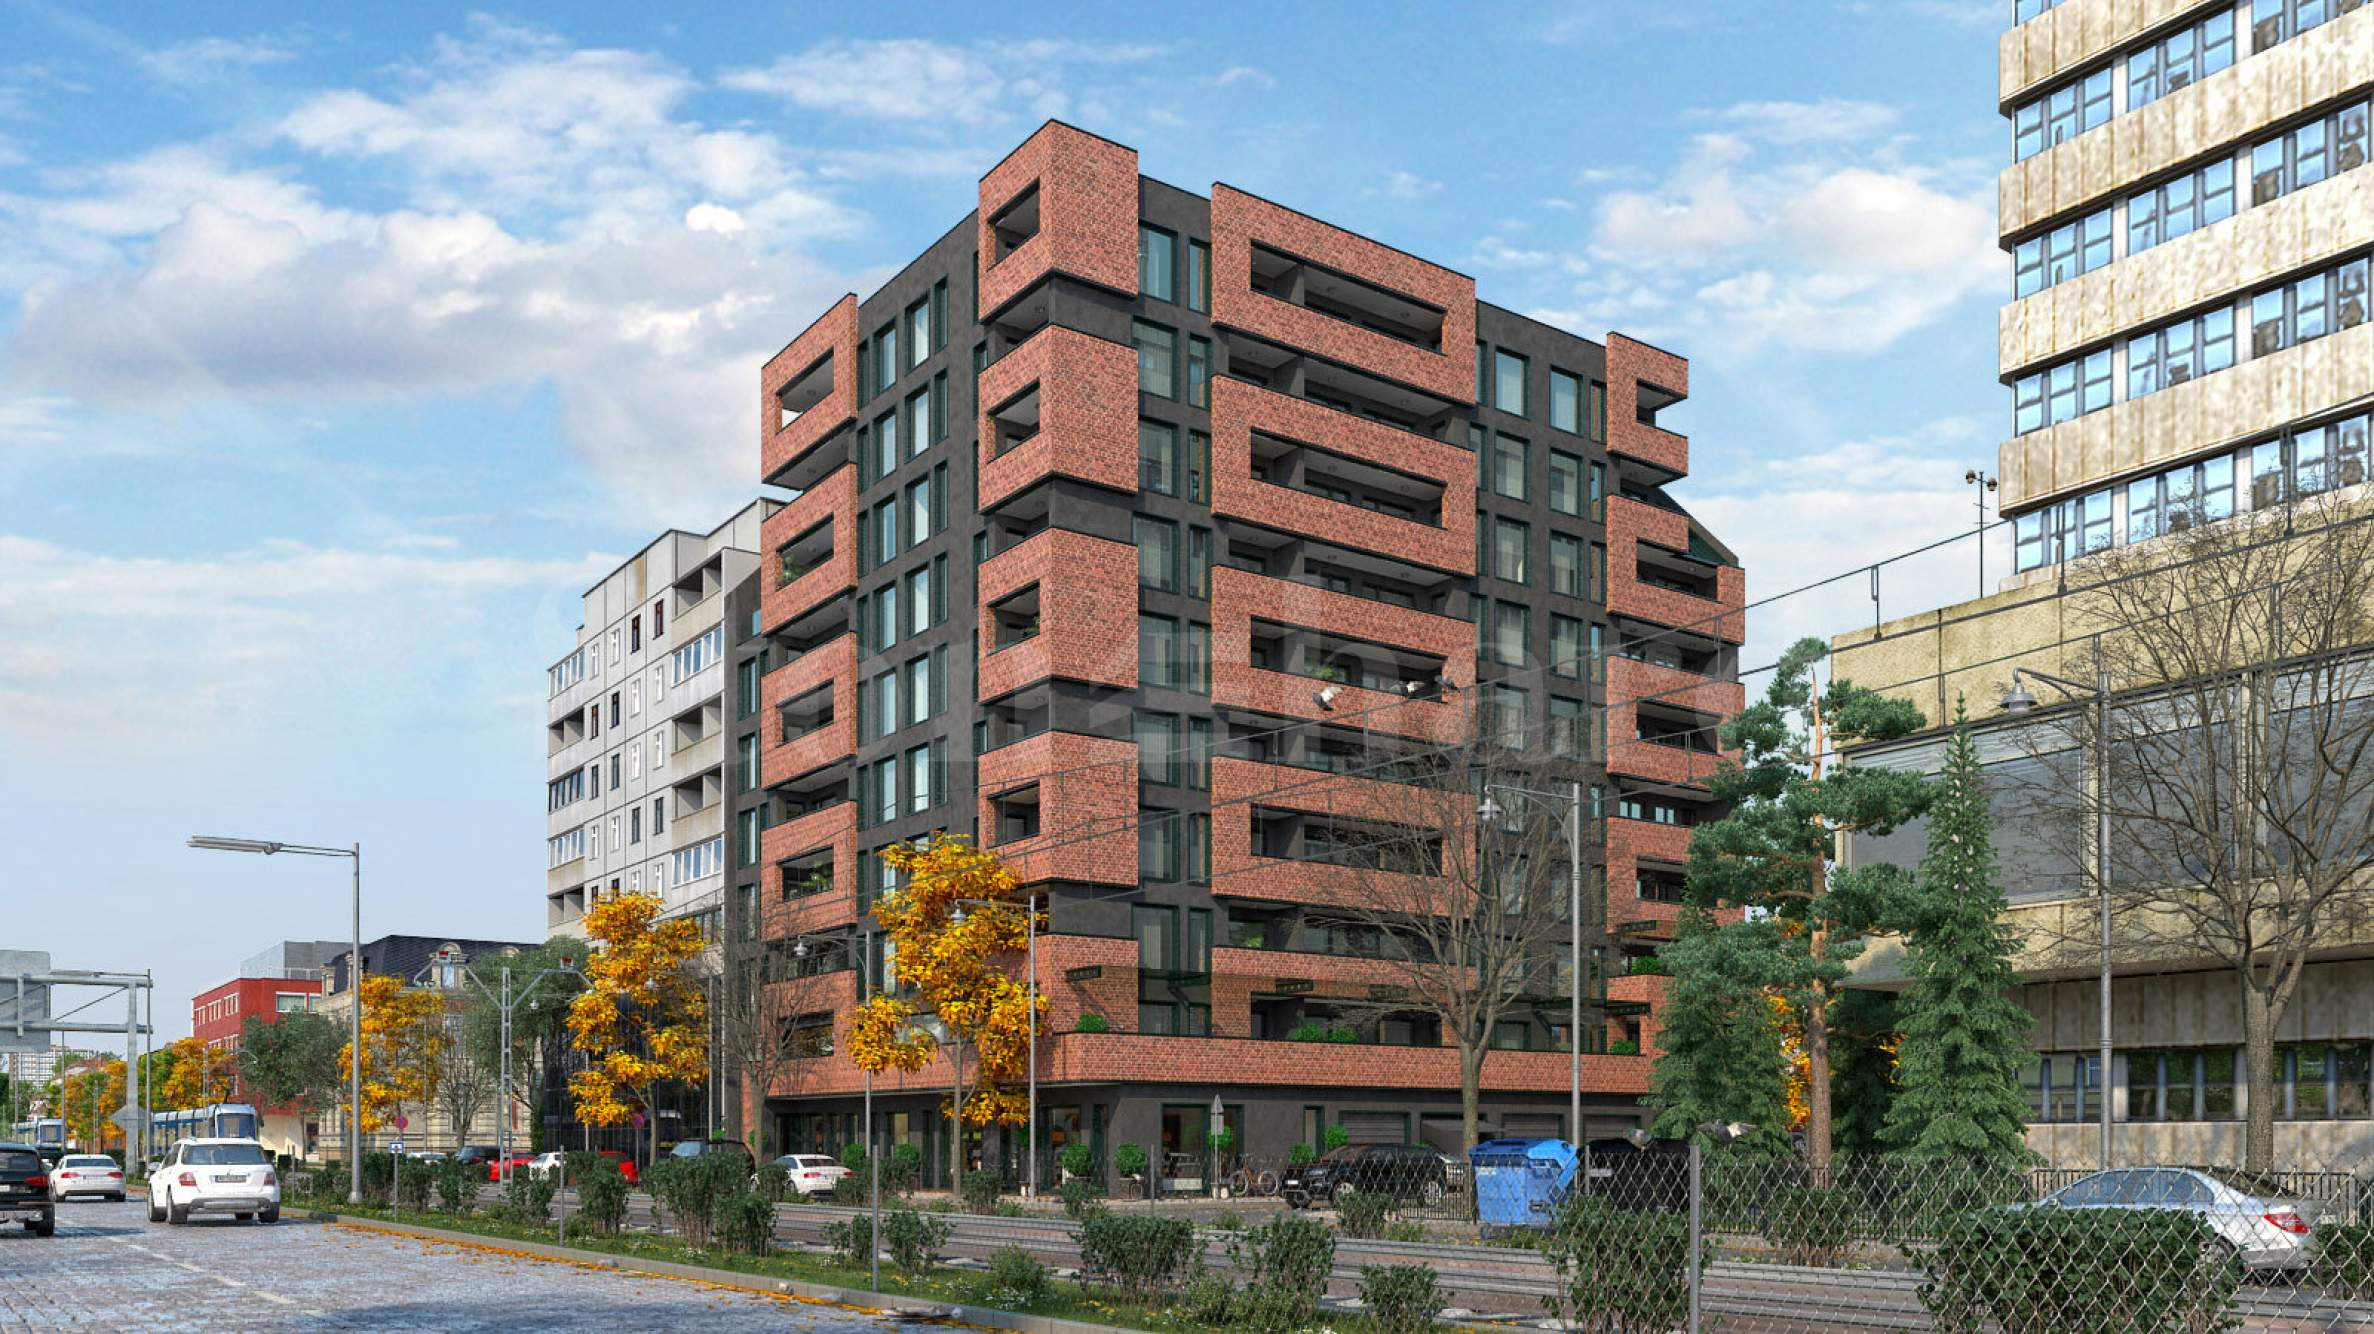 Apartments in a southern neighborhood near Vitosha mountain1 - Stonehard